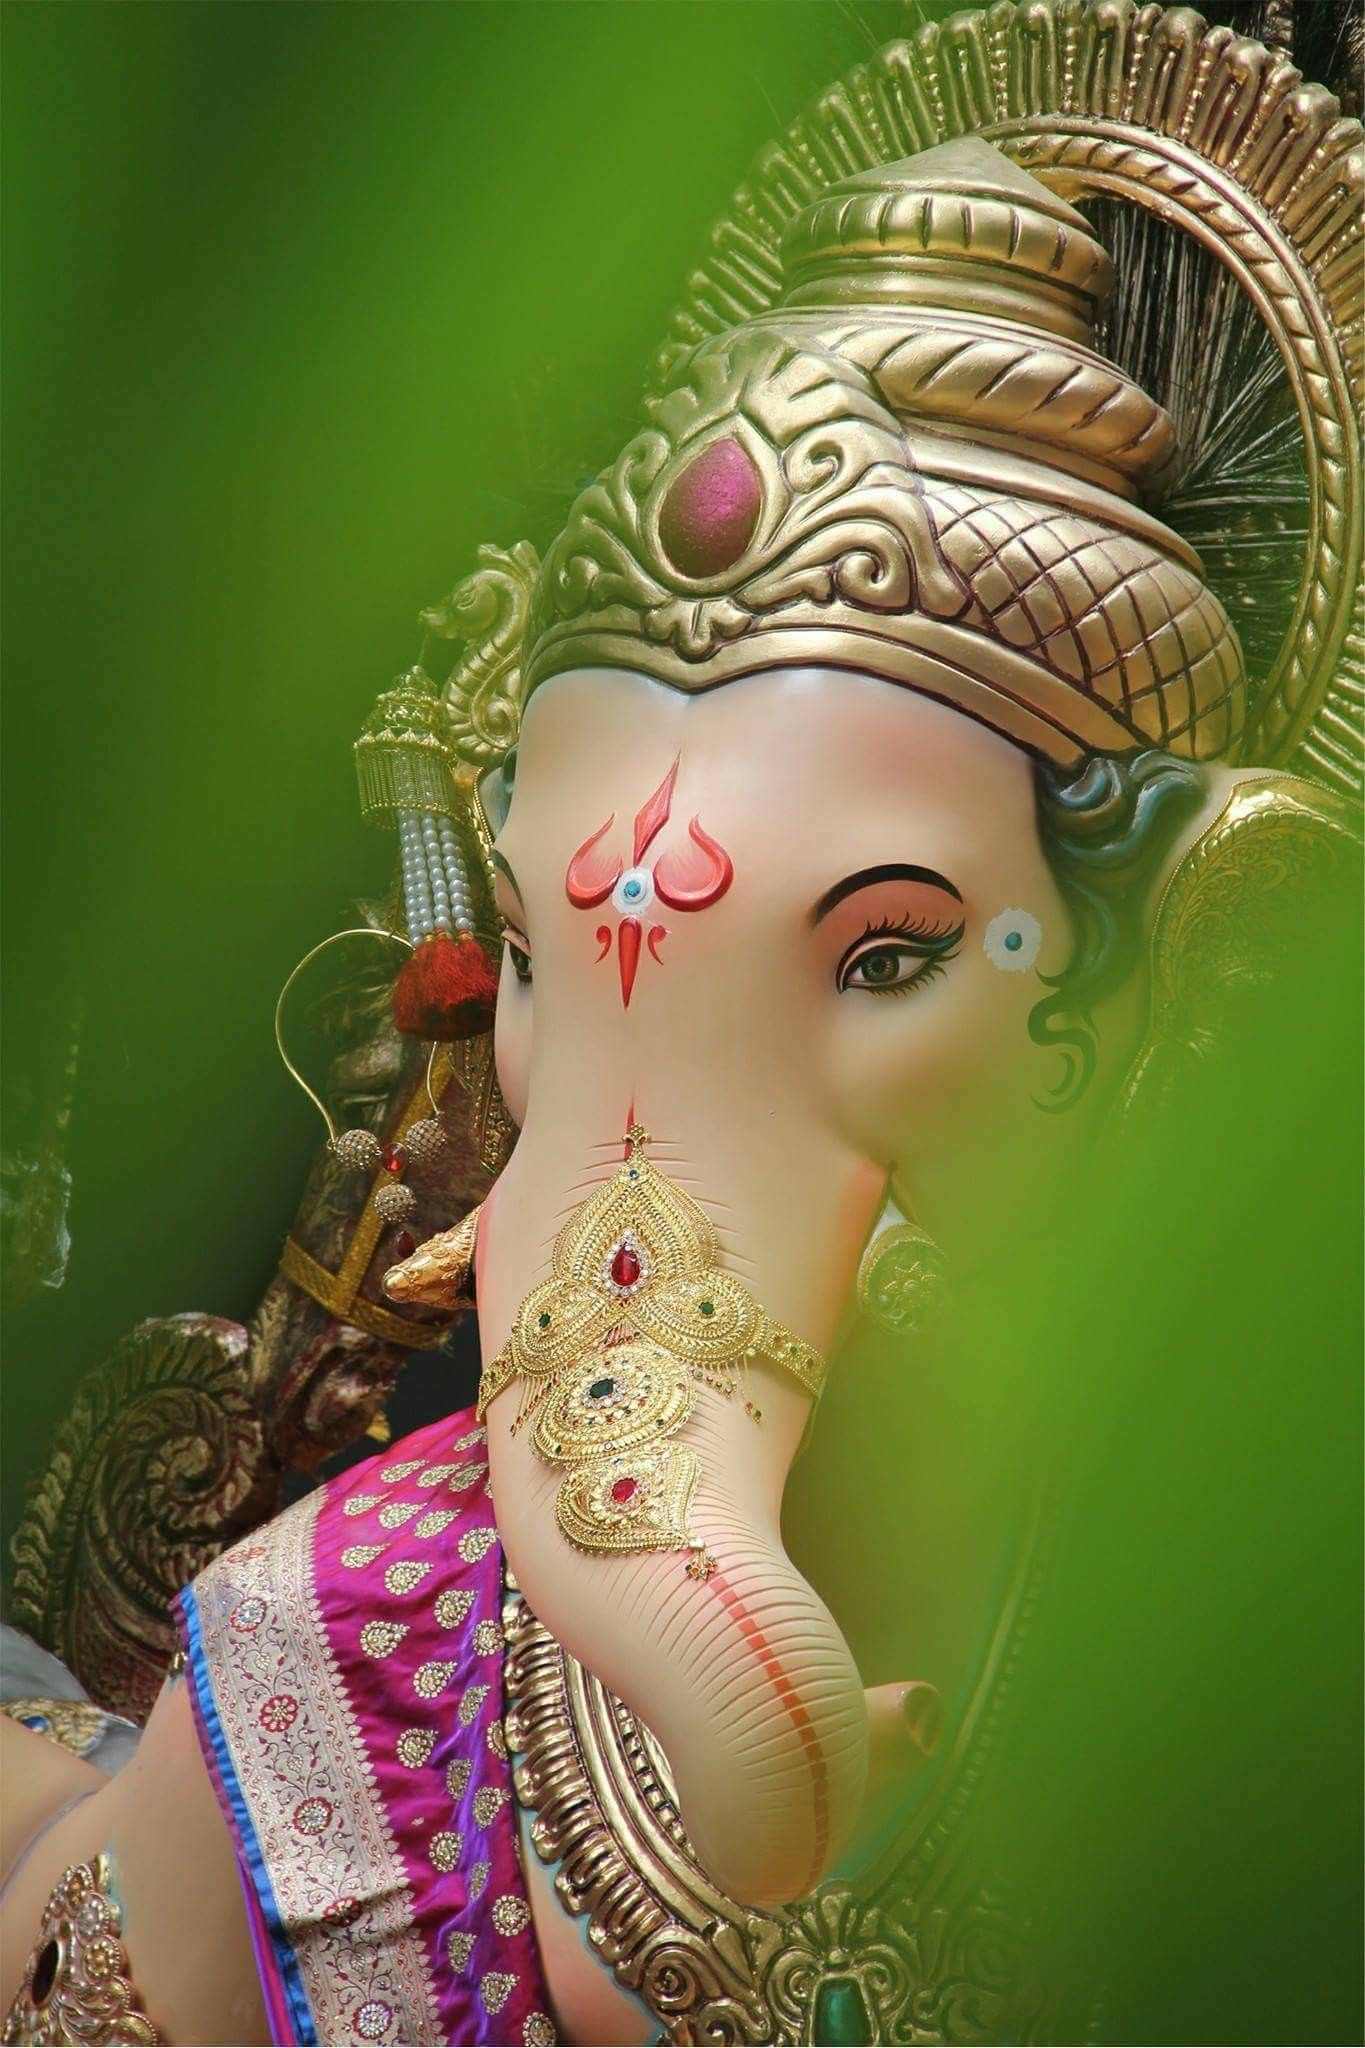 Chinchpoklicha Chintamani Mumbai Ganesh Chaturthi Images Happy Ganesh Chaturthi Images Ganesh Wallpaper